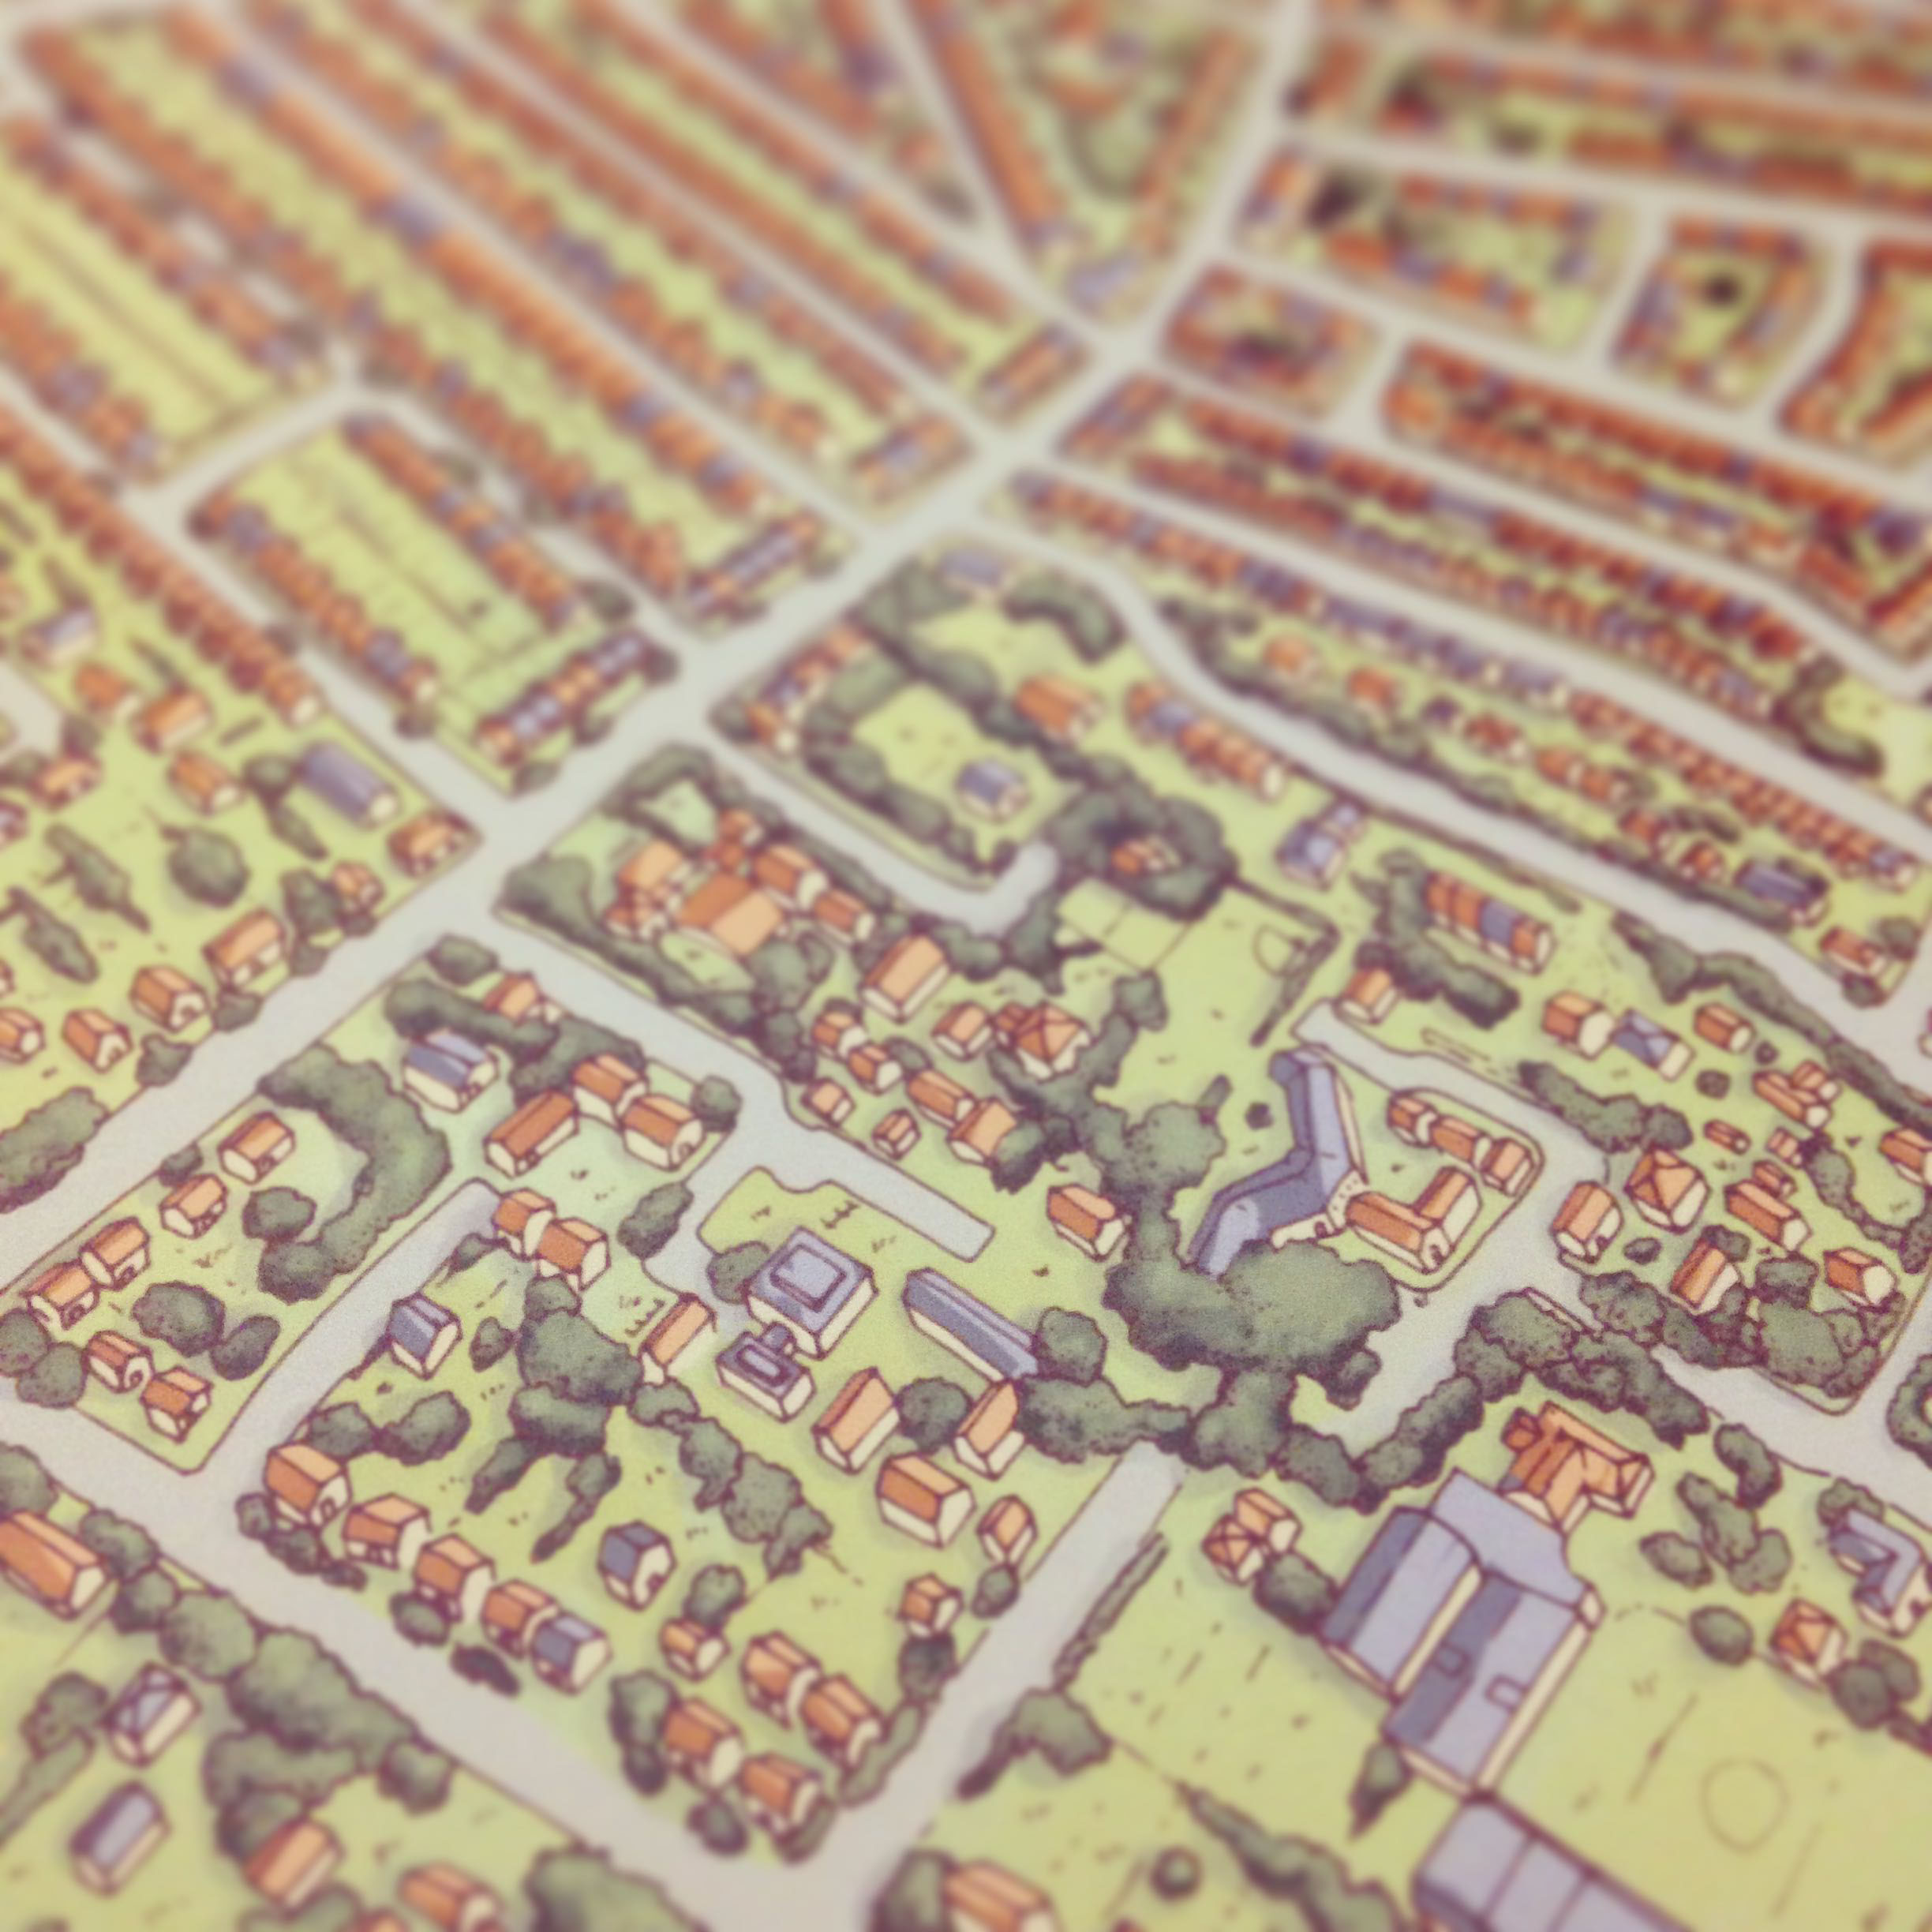 Close up of Golden Triangle Norwich map illustration by Fiona Gowen